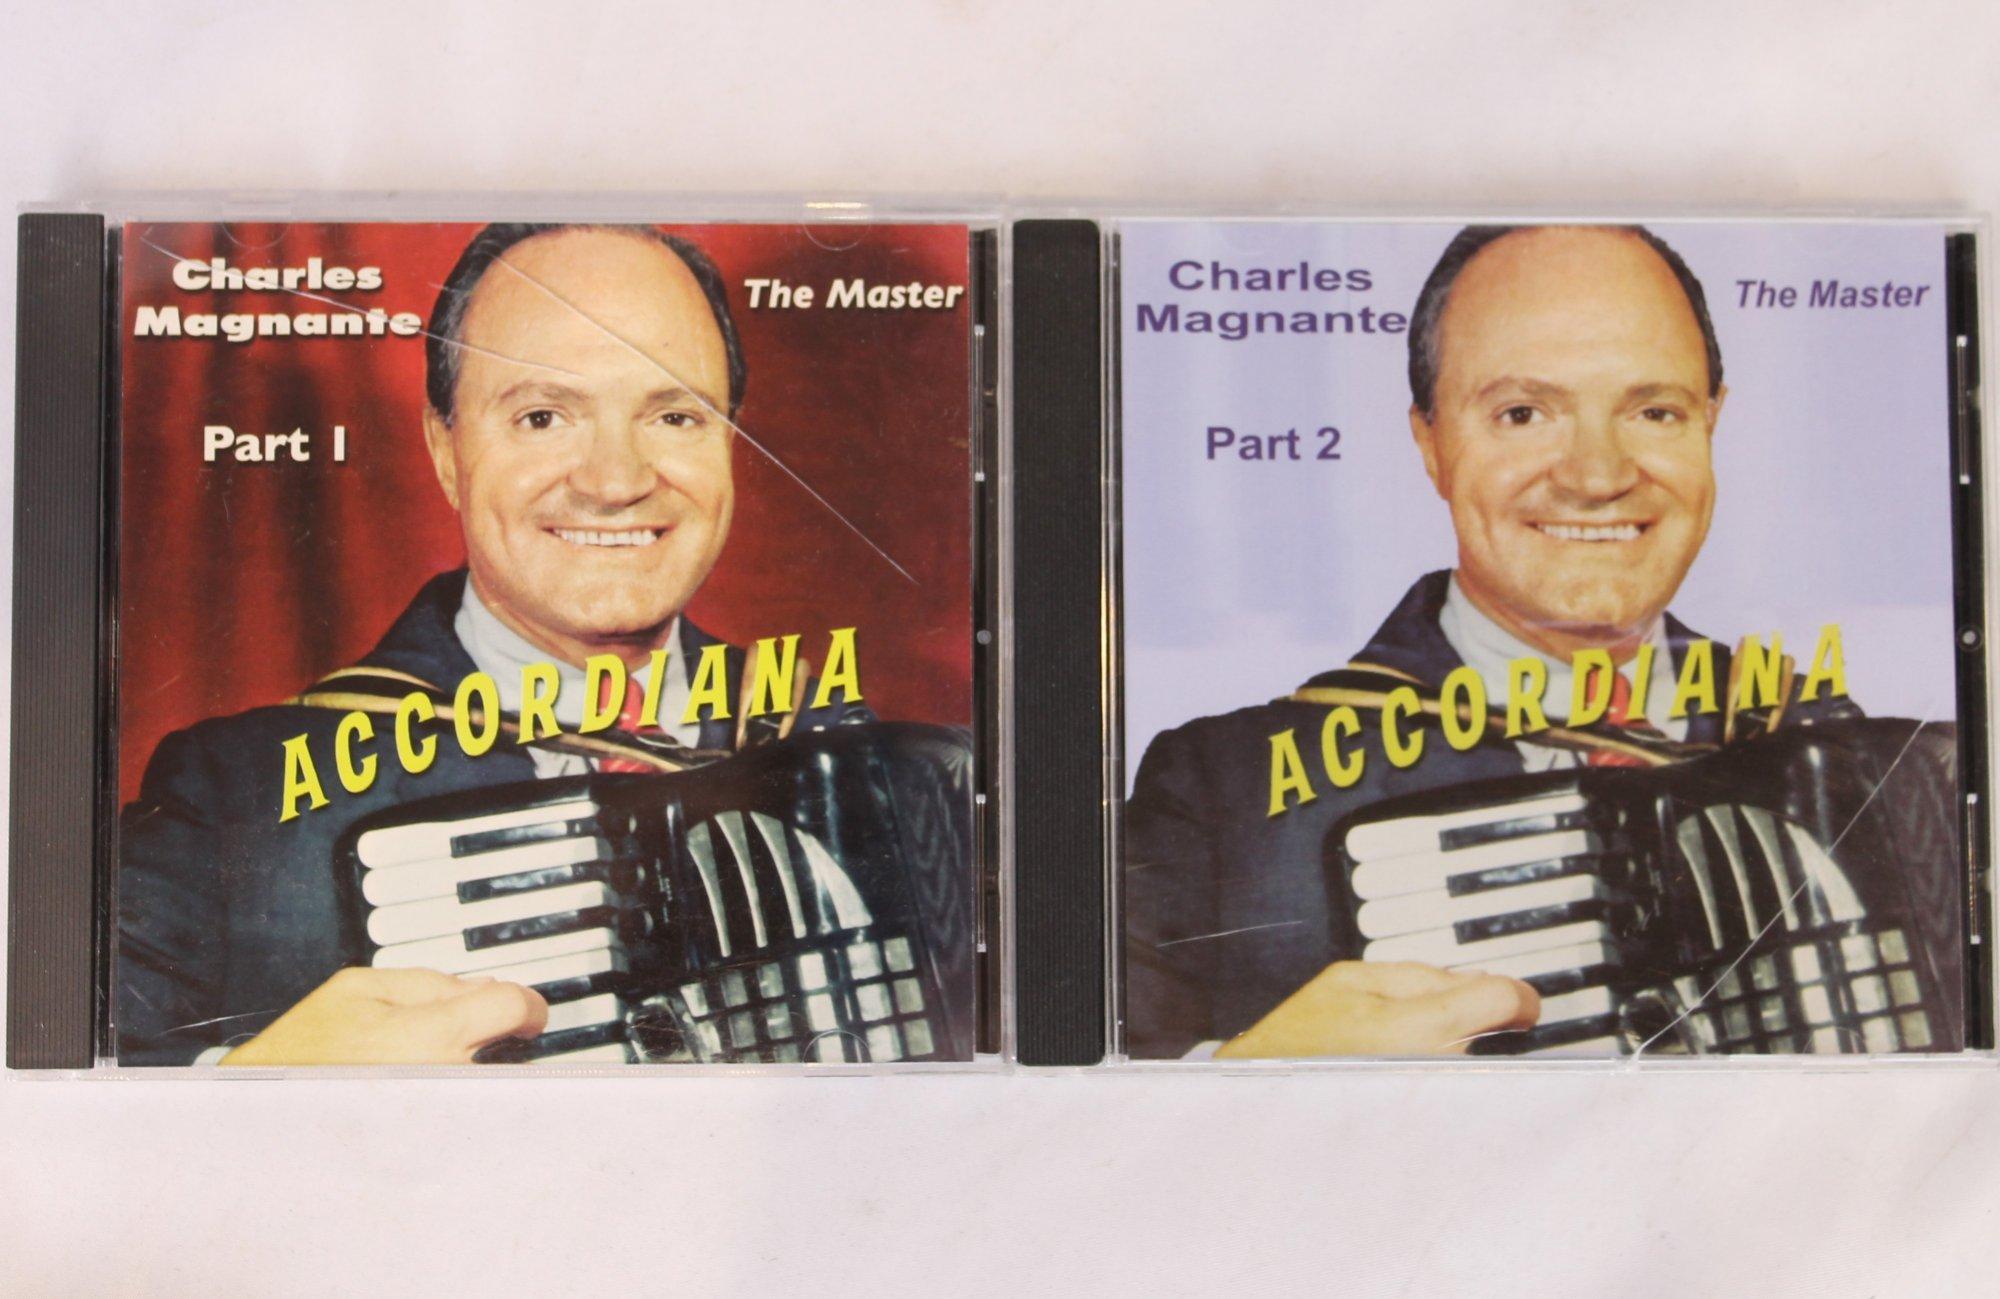 Charles Magnante, The Master: Accordiana (Set of Two CDs)